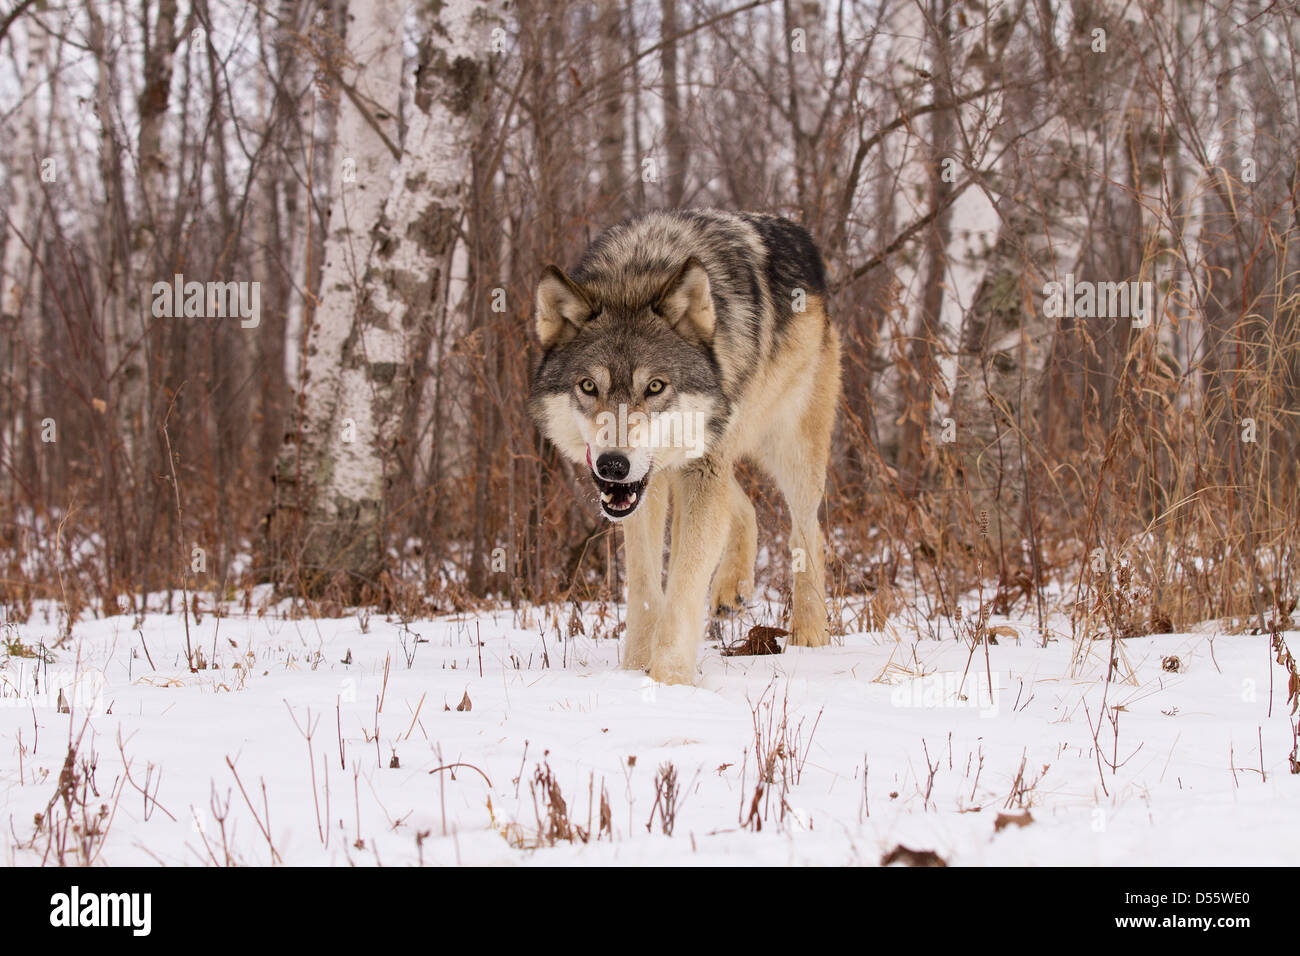 Gray Wolf, Canis lupus hunting in the woods - Stock Image